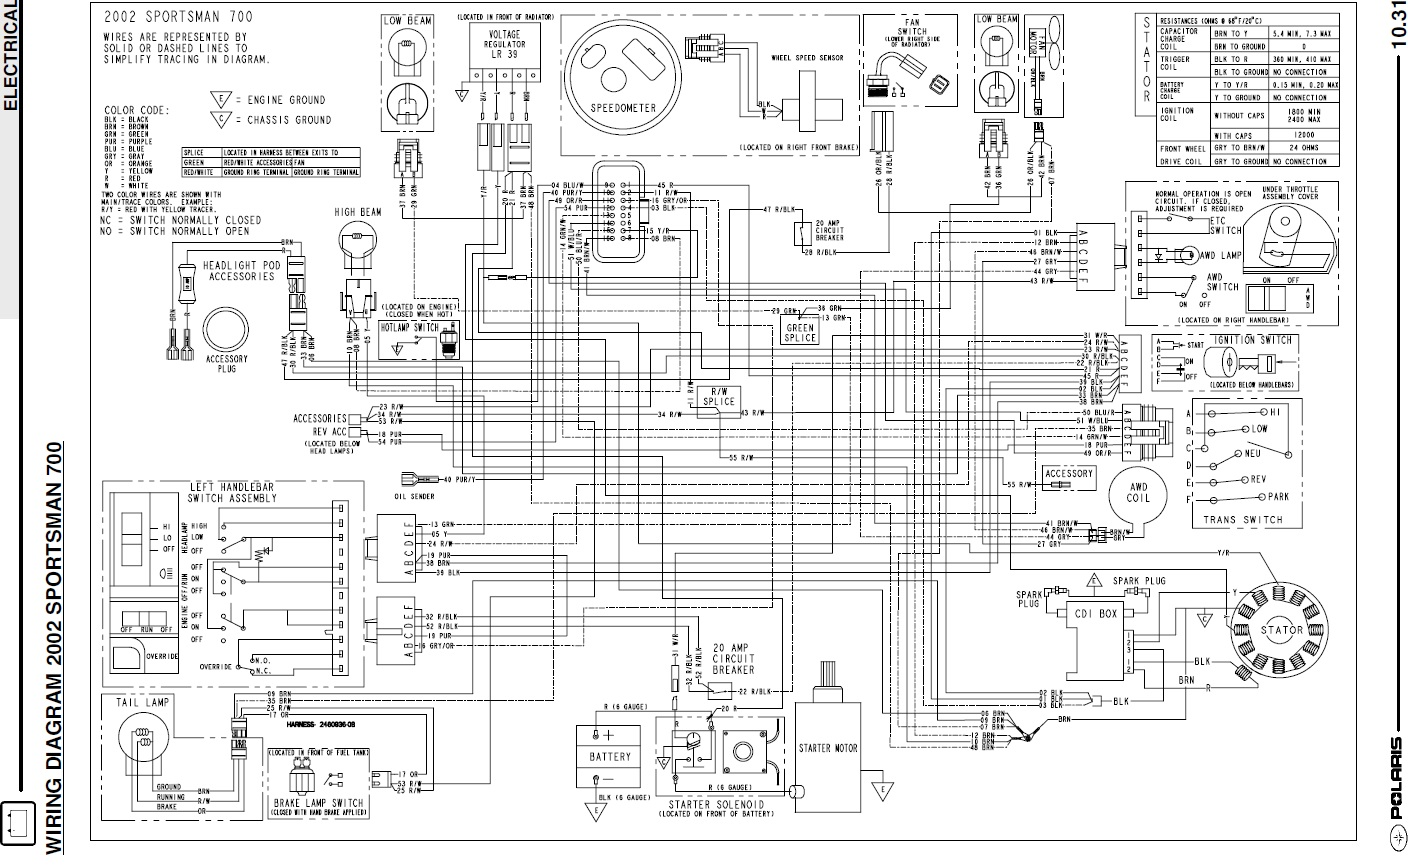 Yamaha Rzr Wiring Diagram furthermore D Dual Battery Seperator Just Hipe Wiring as well Kawasaki Gpz moreover Kawasaki Wiring furthermore Cub Cadet Wiring. on polaris wiring schematic